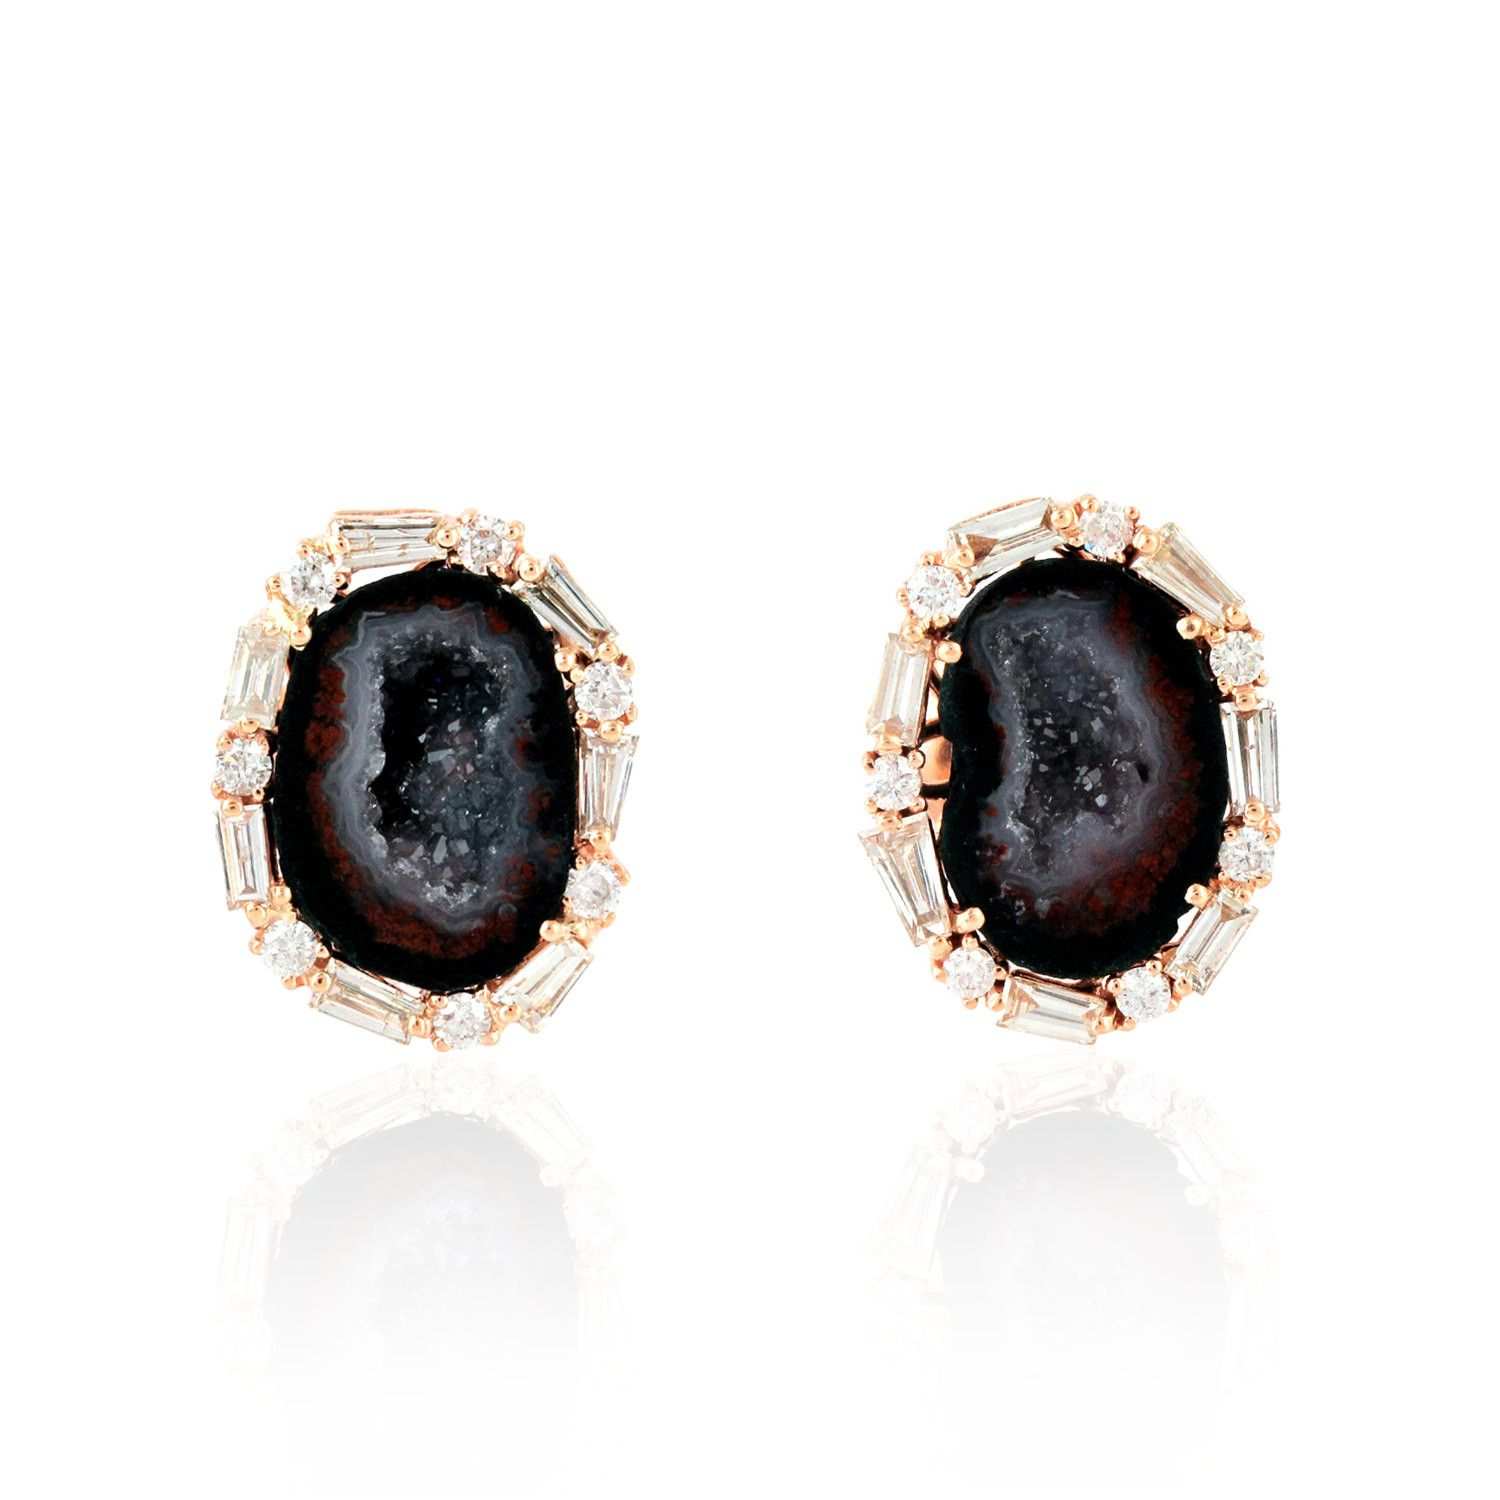 designer beautifully earrings fashionable stud trendy earring cute designed ema